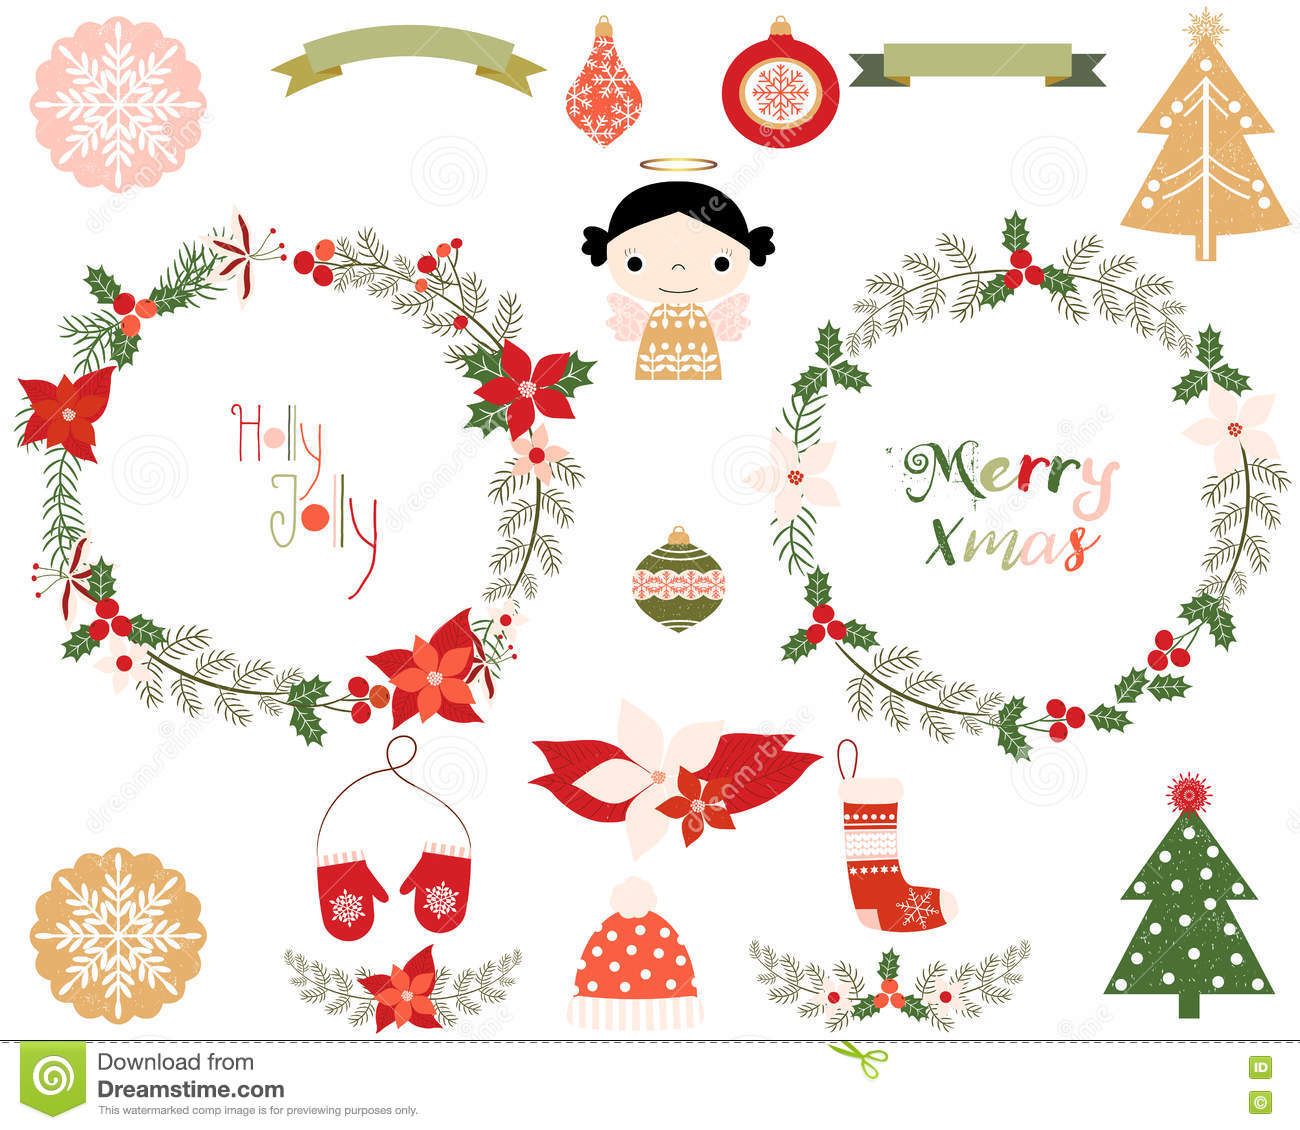 Christmas Wreaths And Design Elements Stock Vector - Illustration of ...